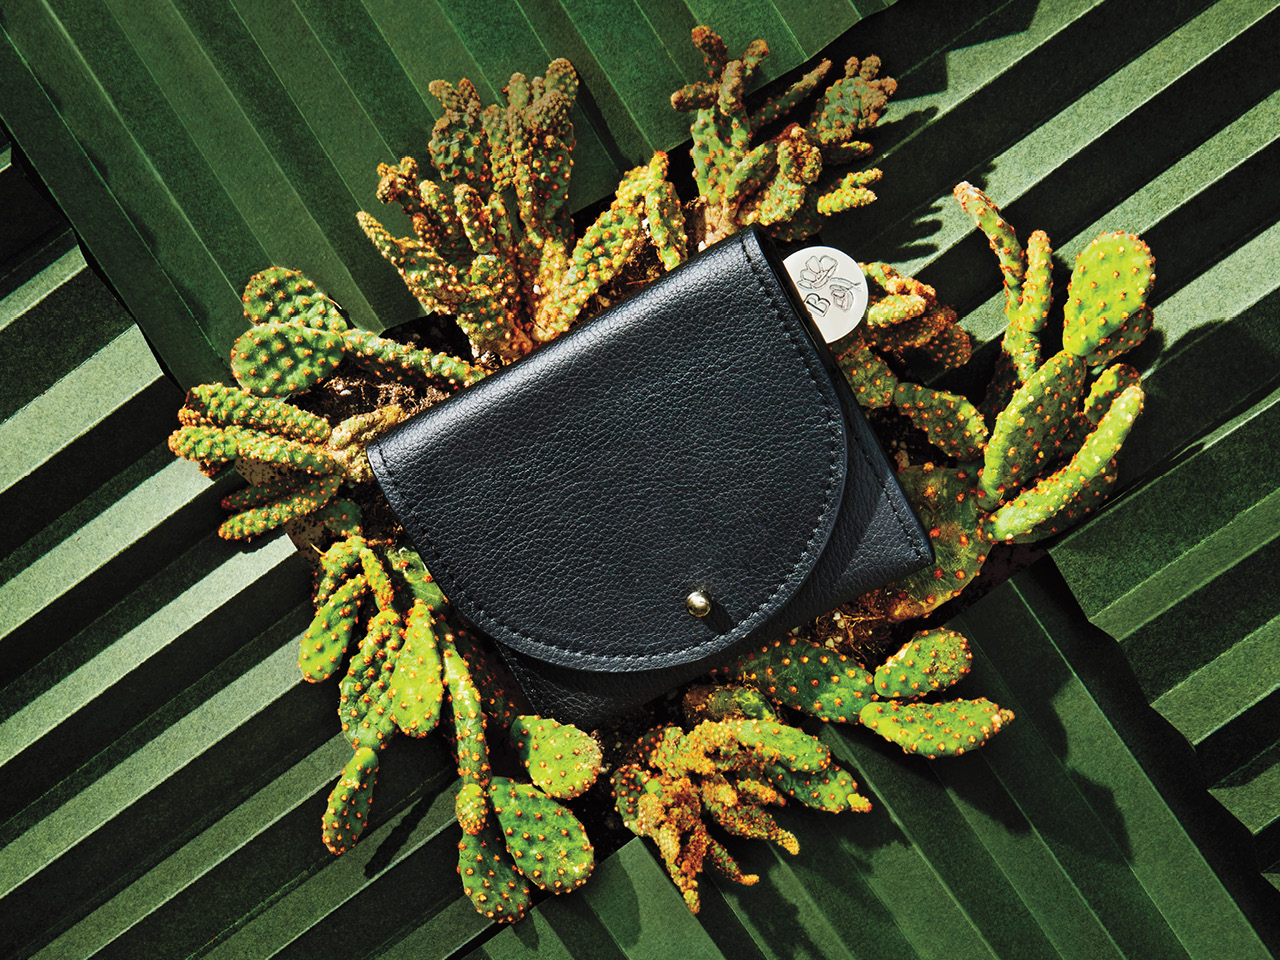 A black cactus leather wallet against a green background made from paper, with a prickly pear cactus.